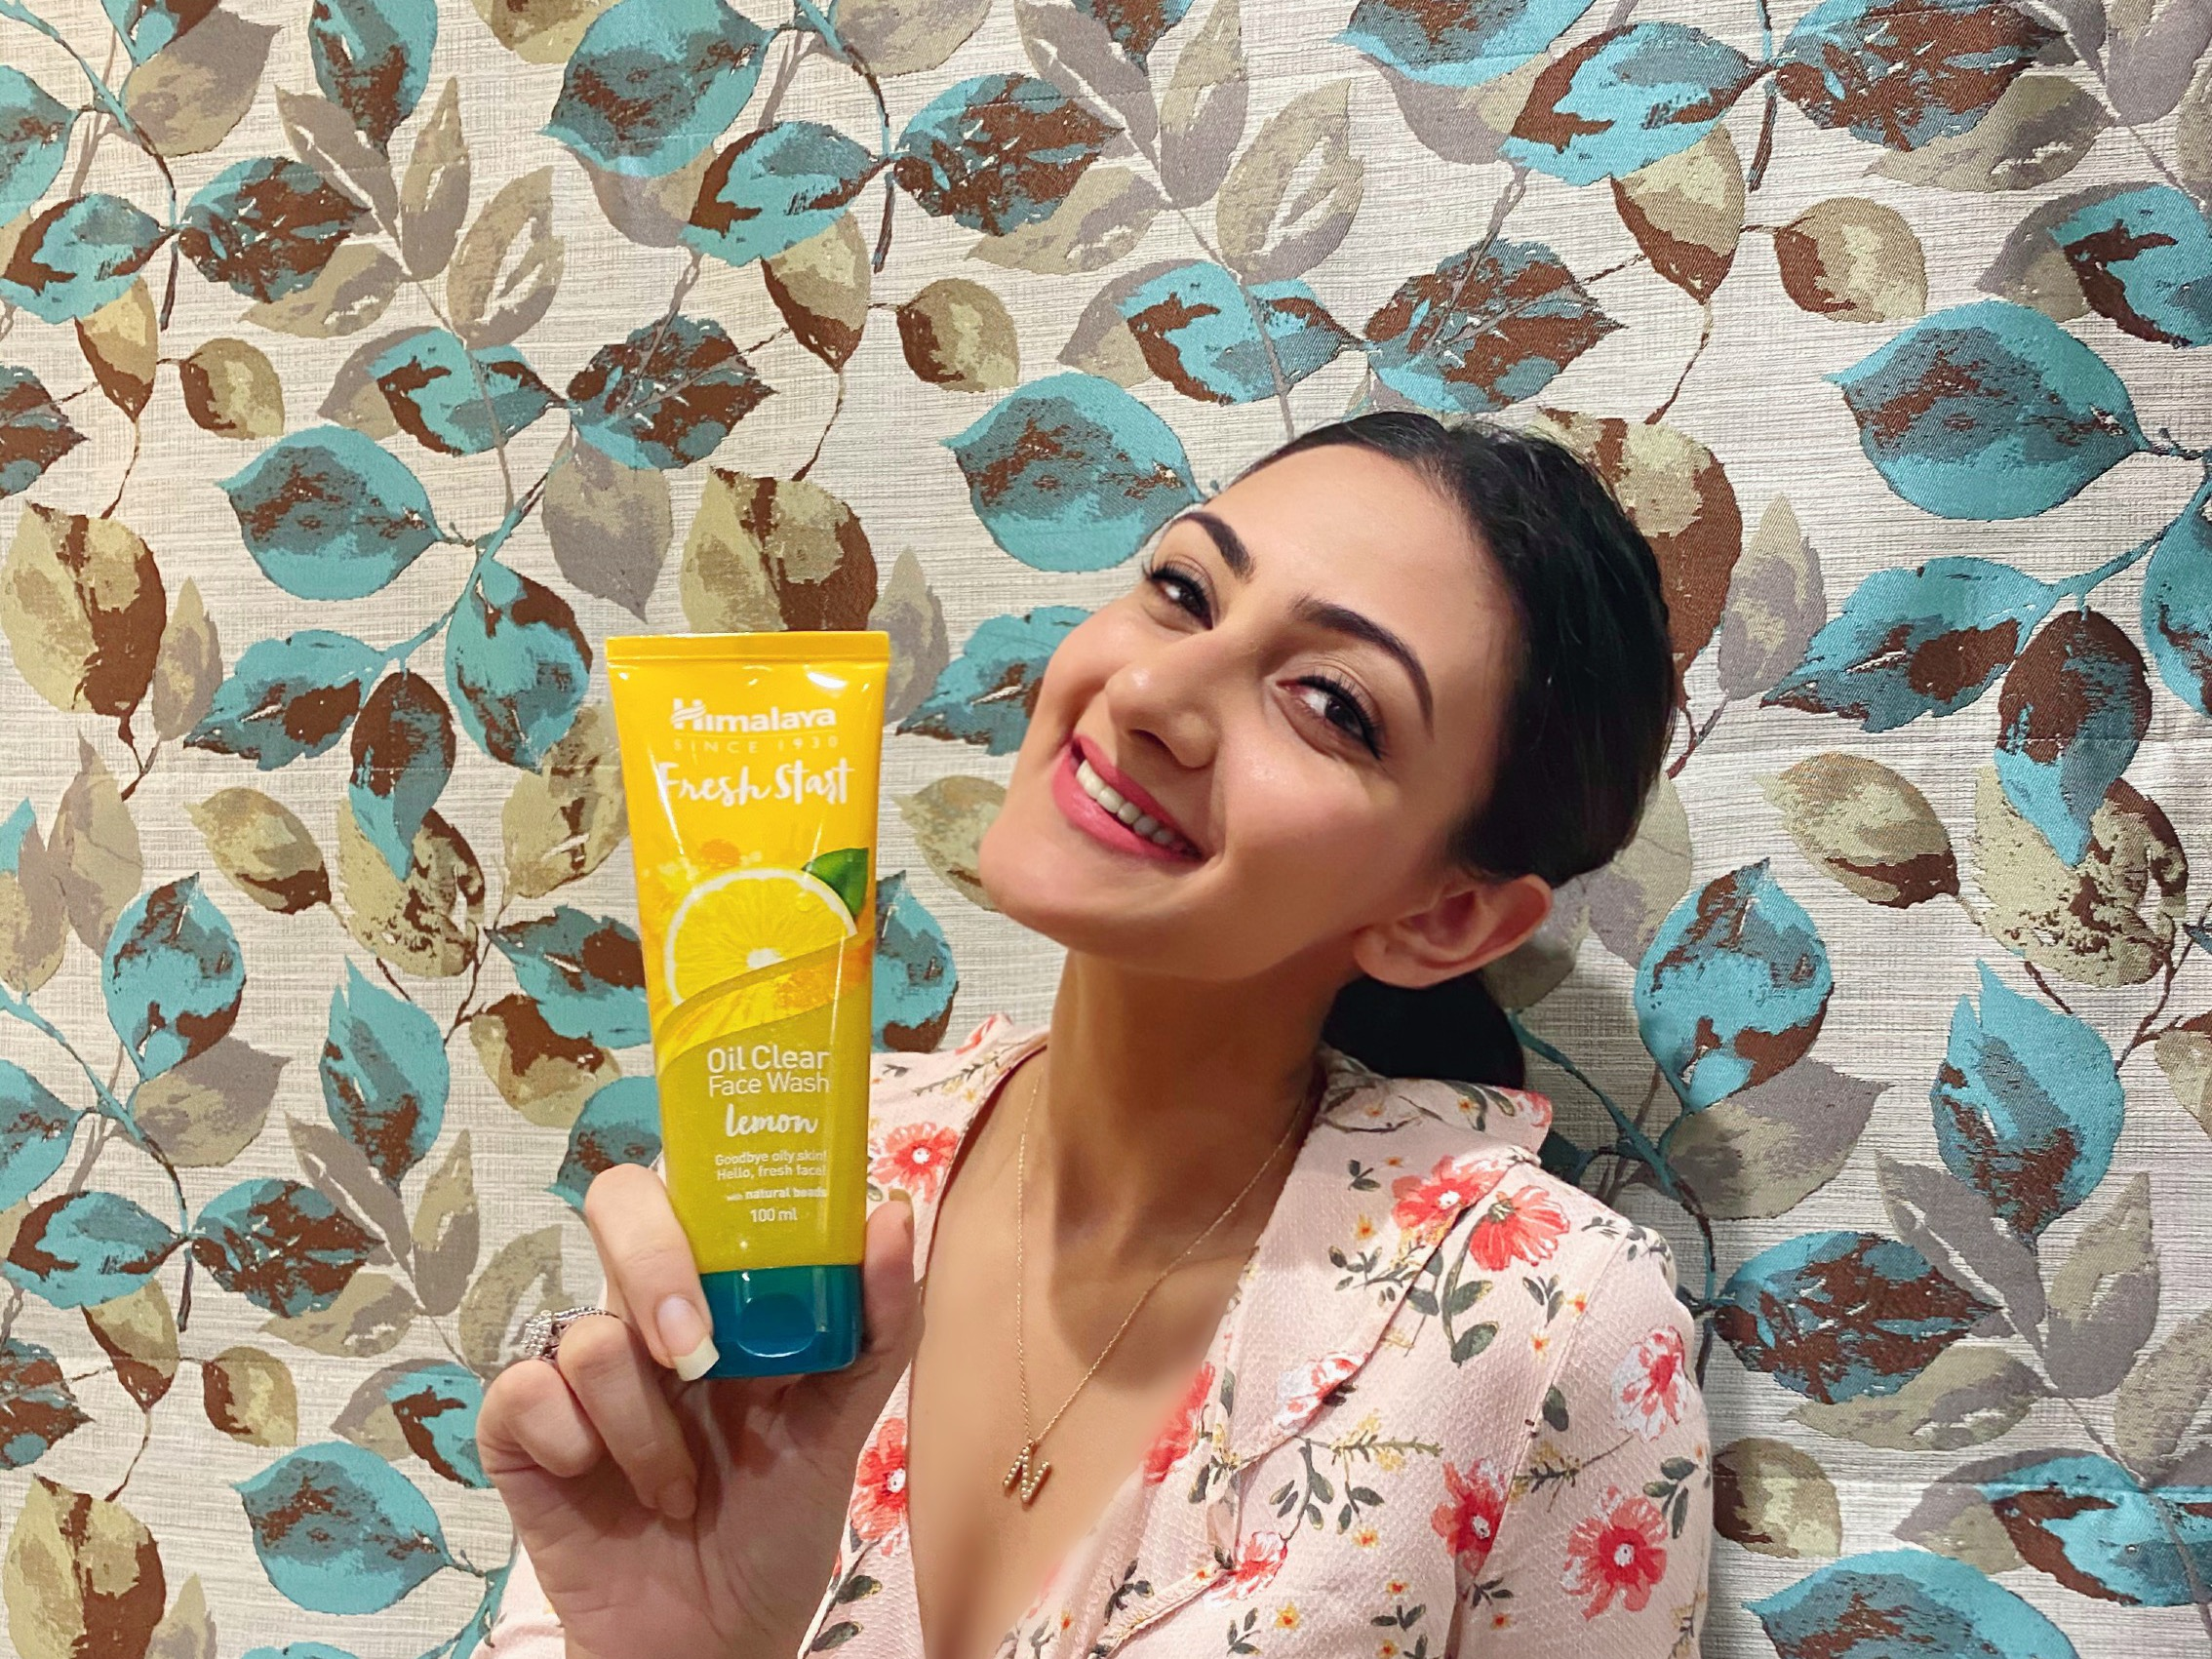 Himalaya Herbals Fresh Start Oil Clear Lemon Face Wash-Definitely recommend-By neelam99